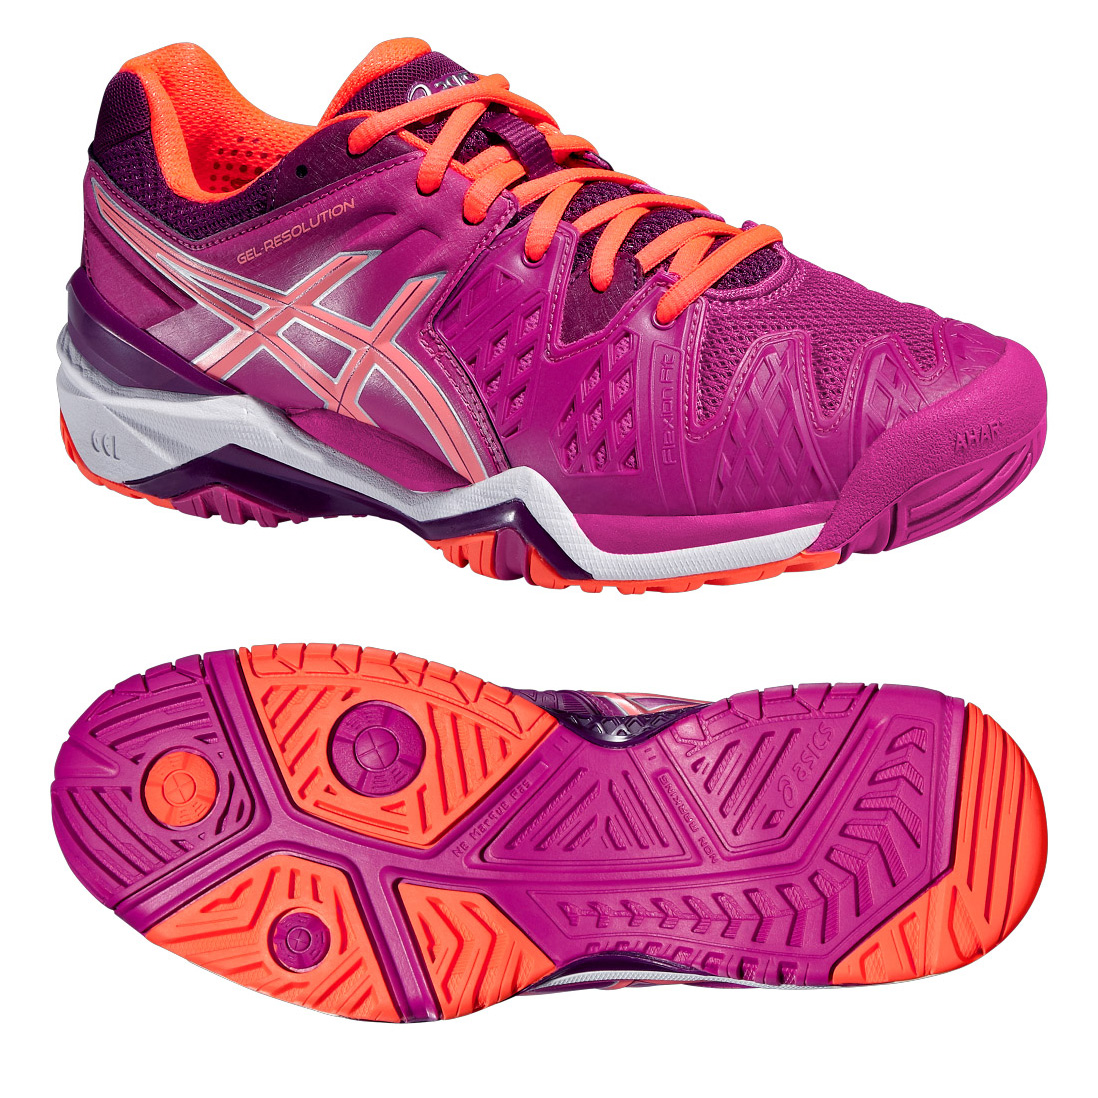 asics tennis shoes shop for cheap tennis and save